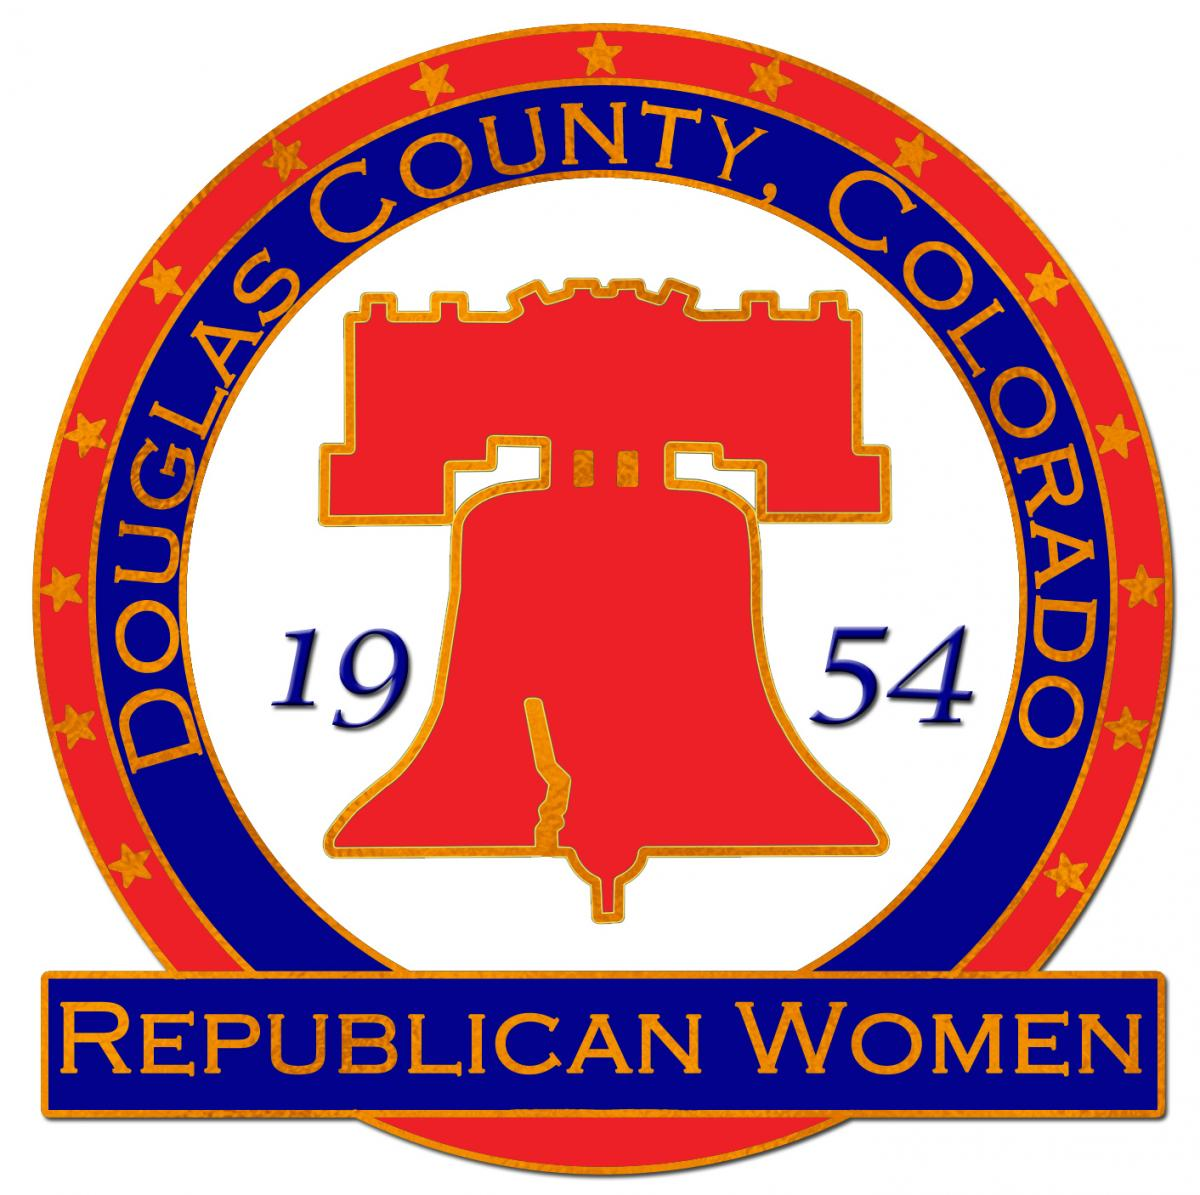 Douglas County Republican Women